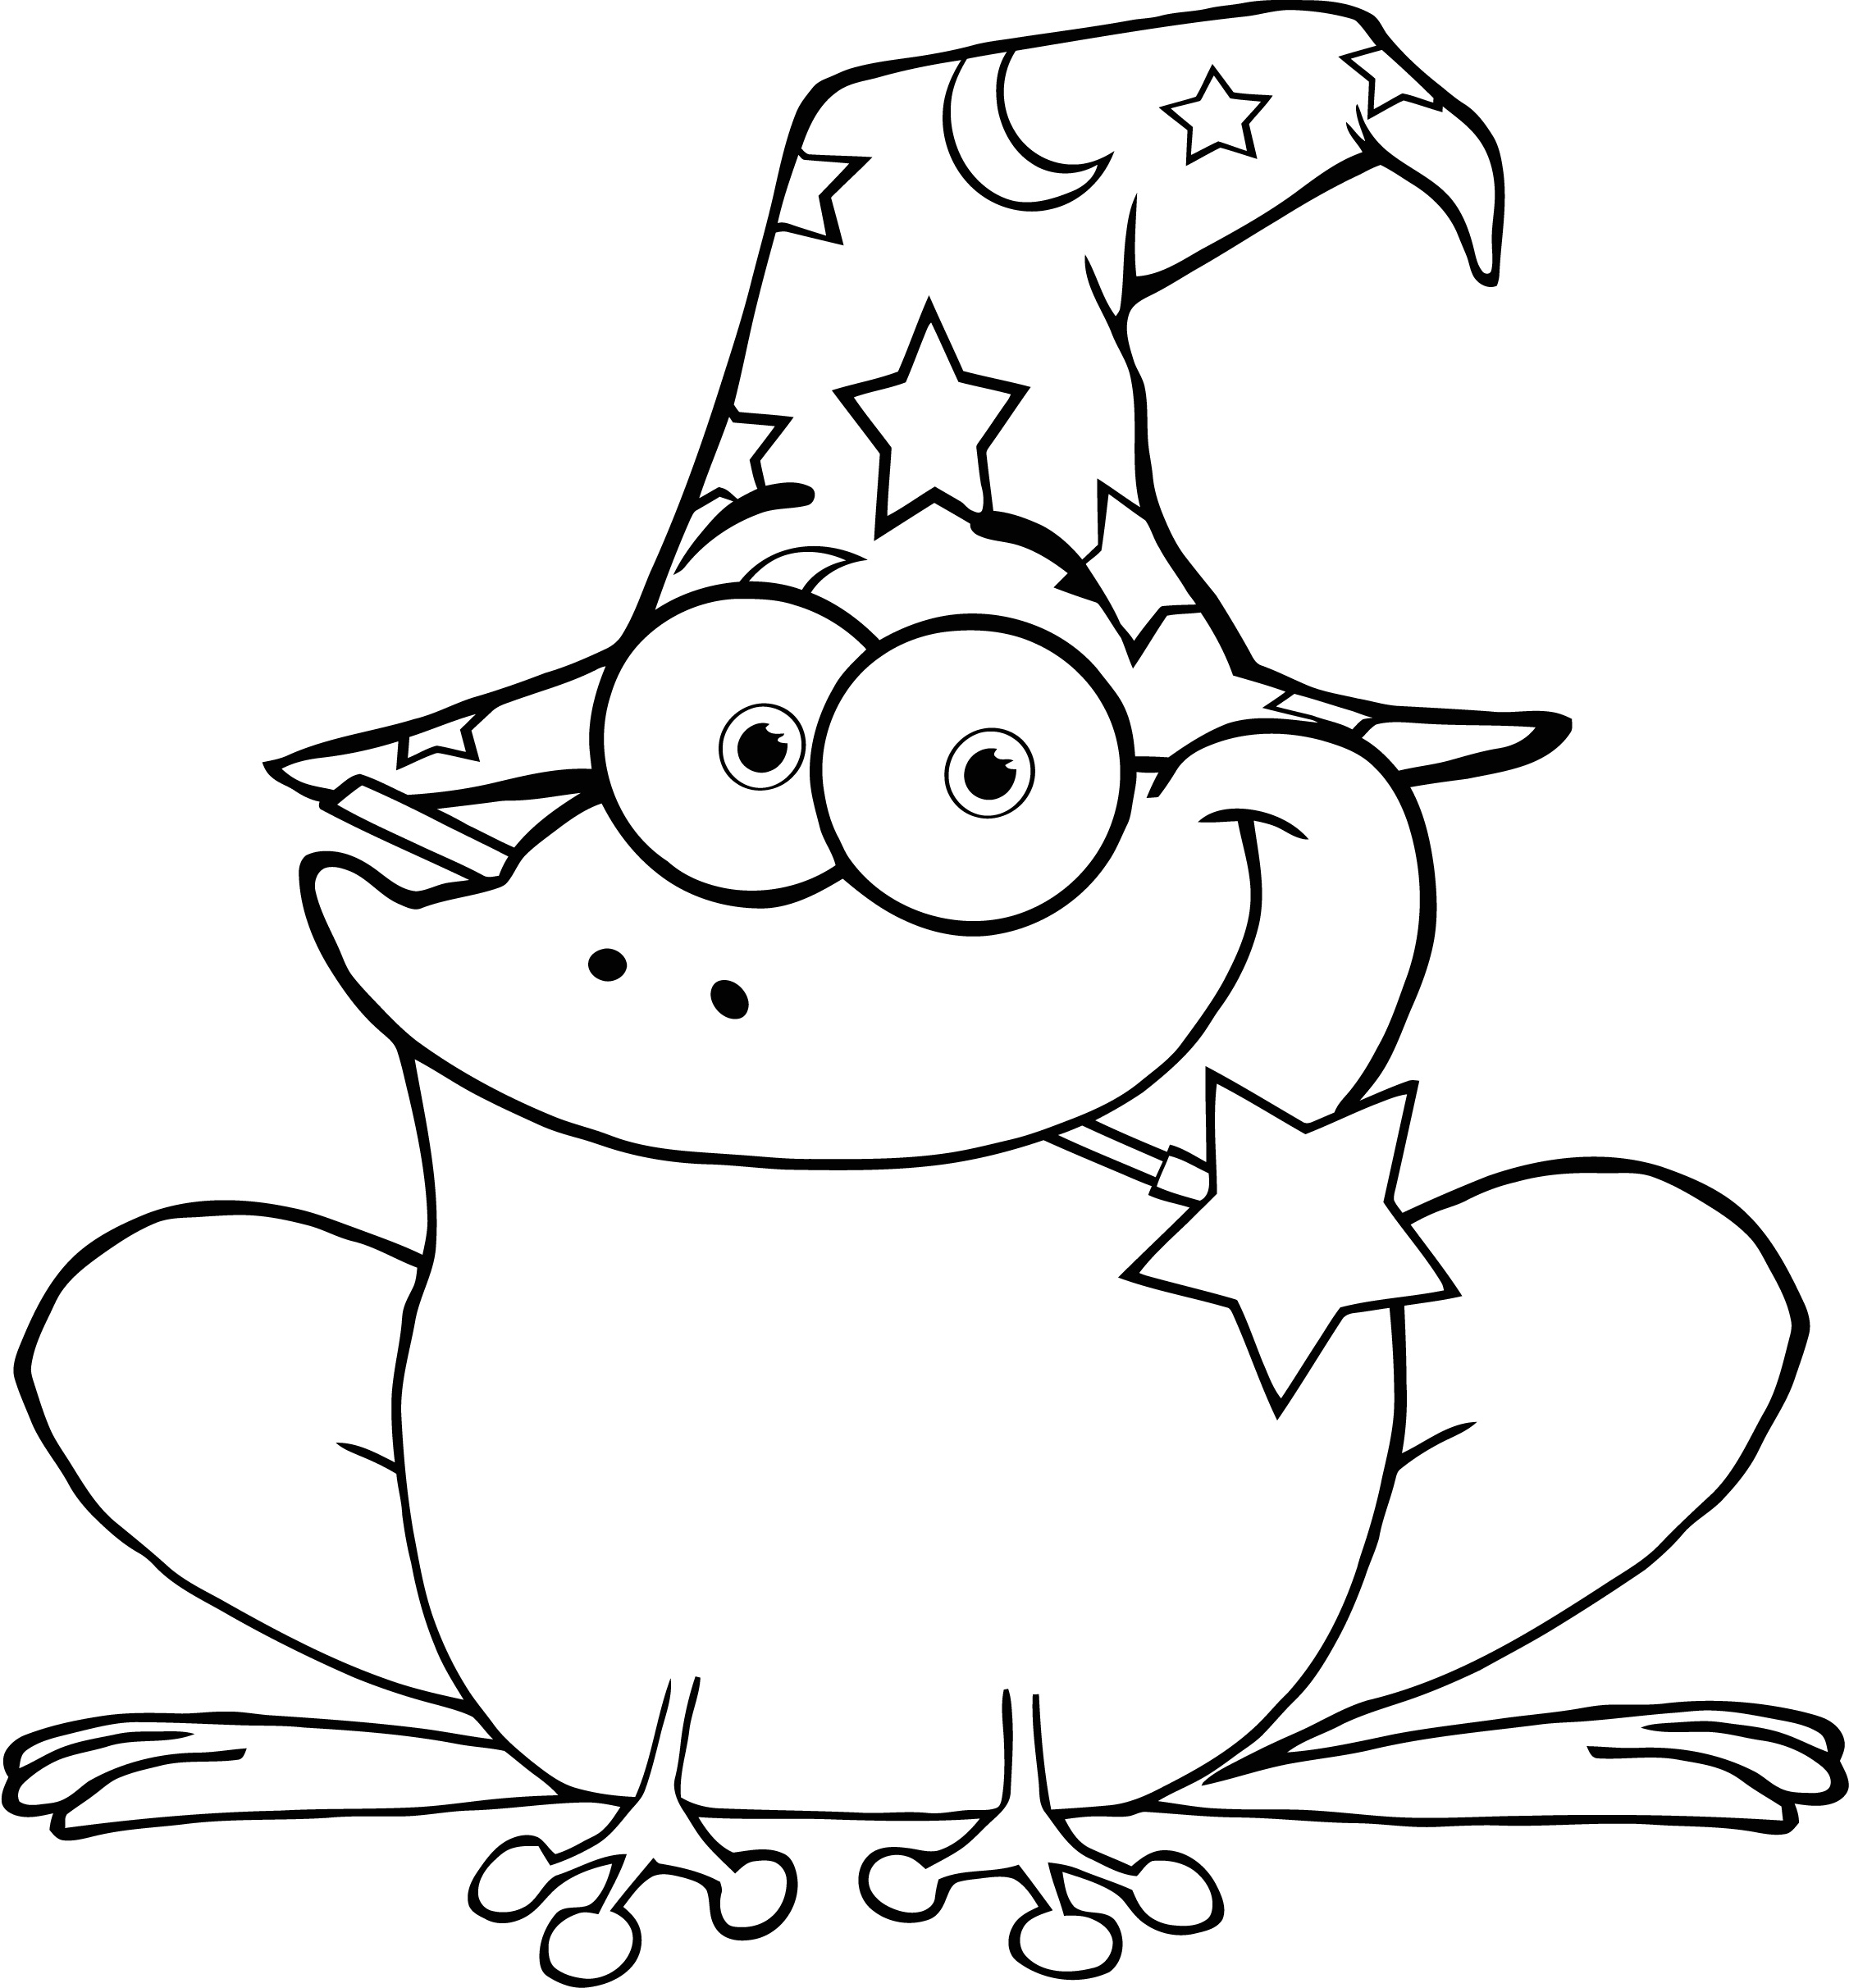 2254x2424 Magic Tree House Coloring Pages Tree House Coloring Pages Jack